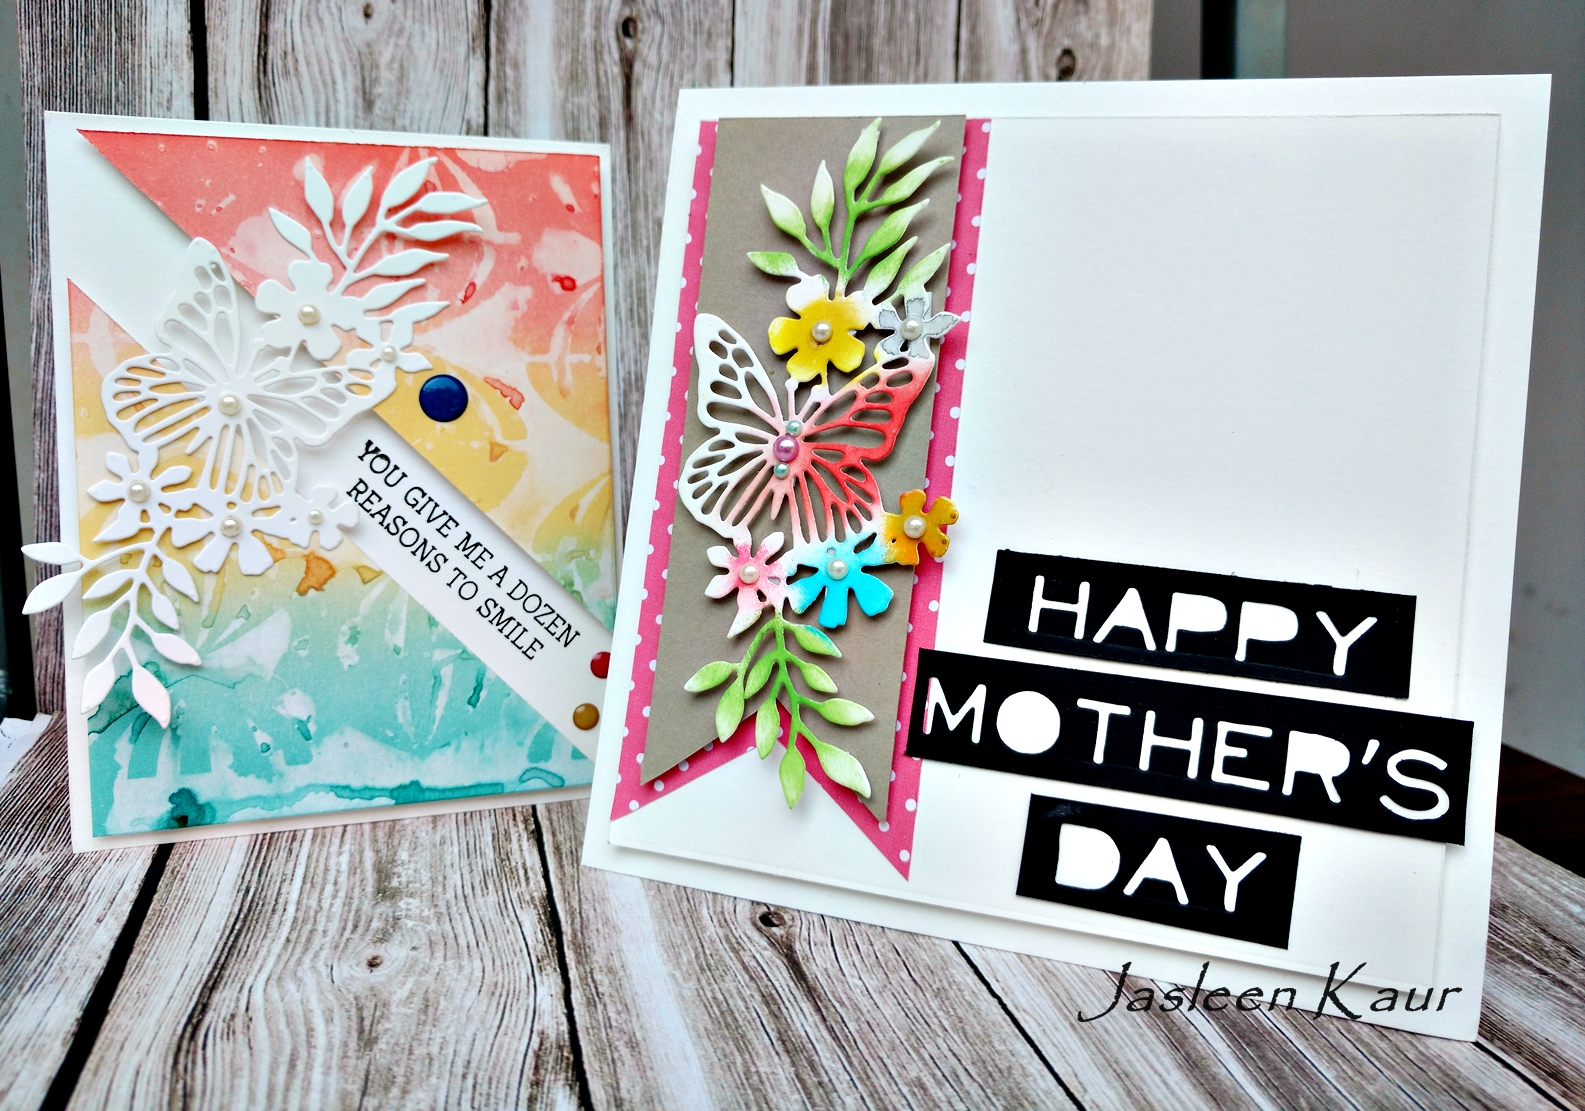 Sizzix Card Making Ideas Part - 31: We Are Observing Motheru0027s Day In India On The 14th Of This Month And I Came  Up With A Couple Of Last Minute Motheru0027s Day Card Ideas Featuring The Newly  ...